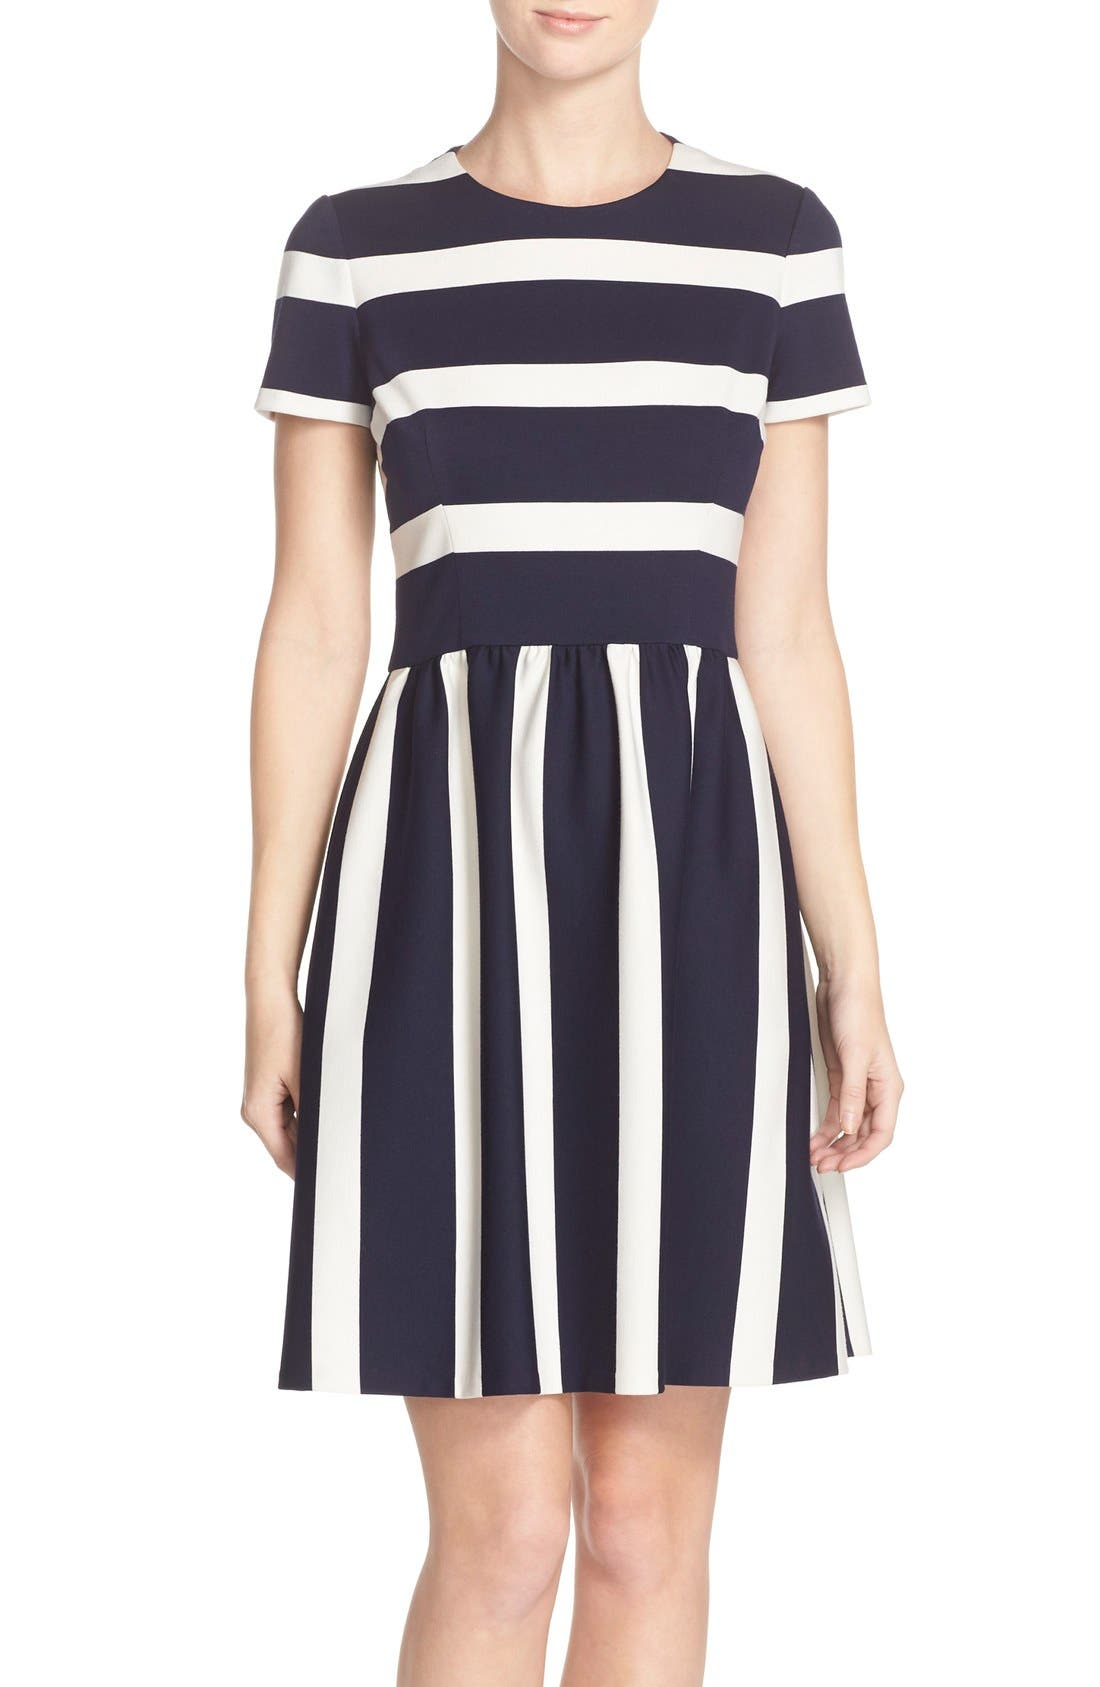 ELIZA J Stripe Knit Fit & Flare Dress